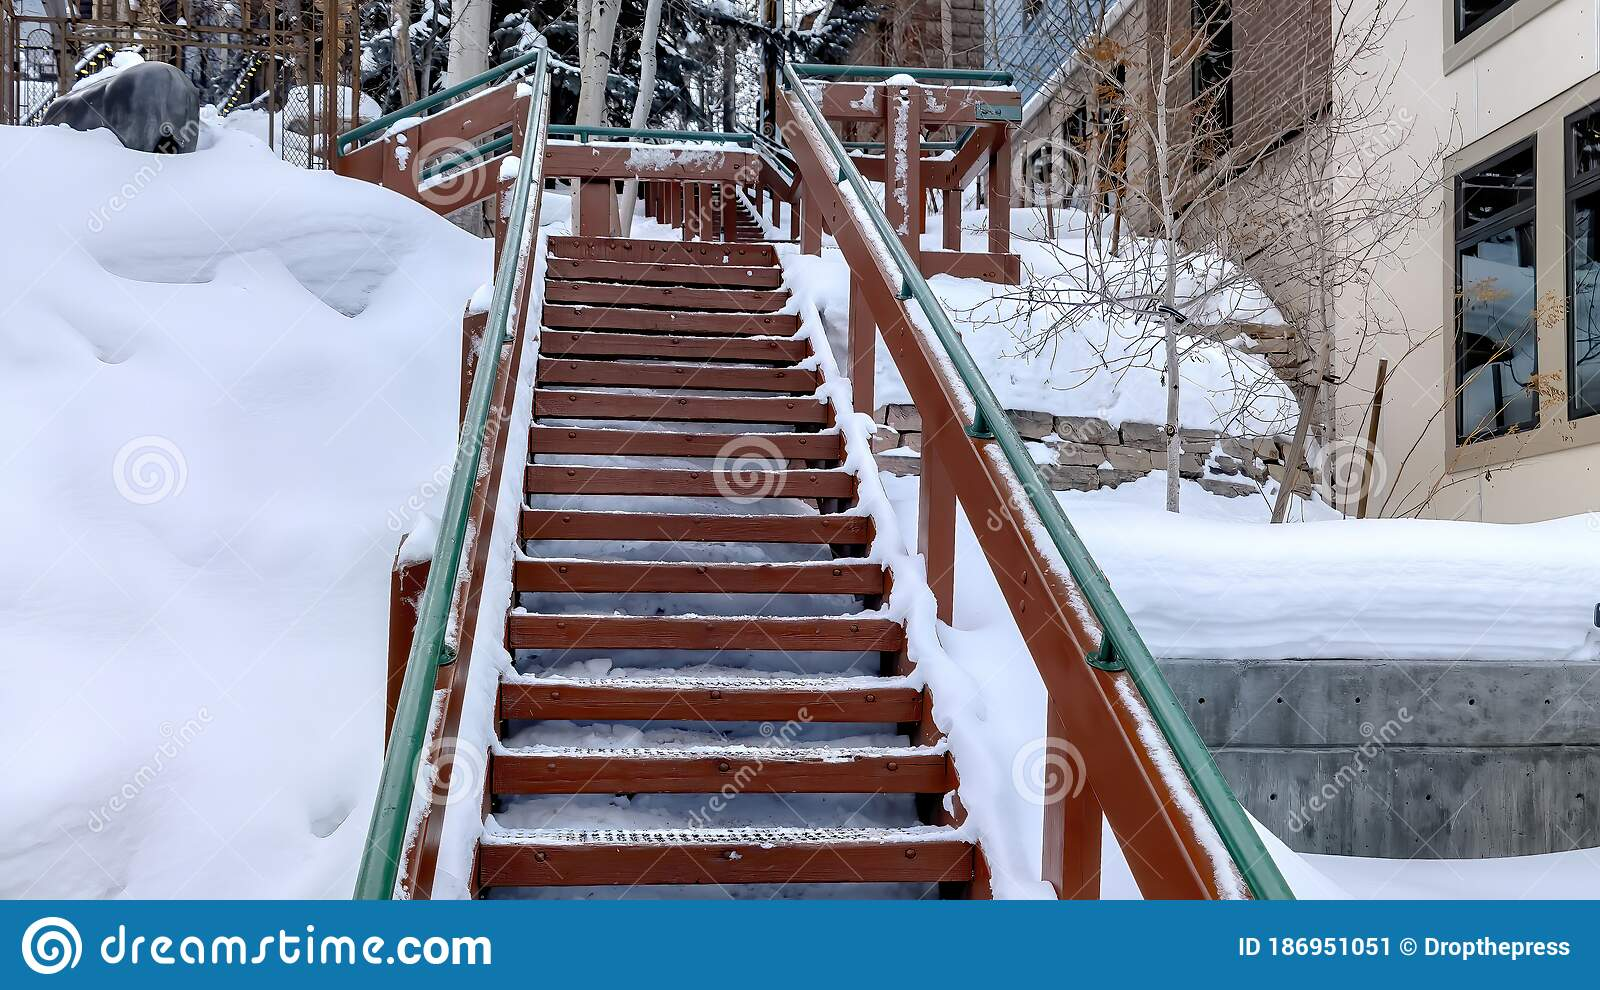 Image of: Panorama Outdoor Stairs With Grate Metal Treads And Green Handrail On Snowy Winter Hill Stock Image Image Of Hill Architectural 186951051